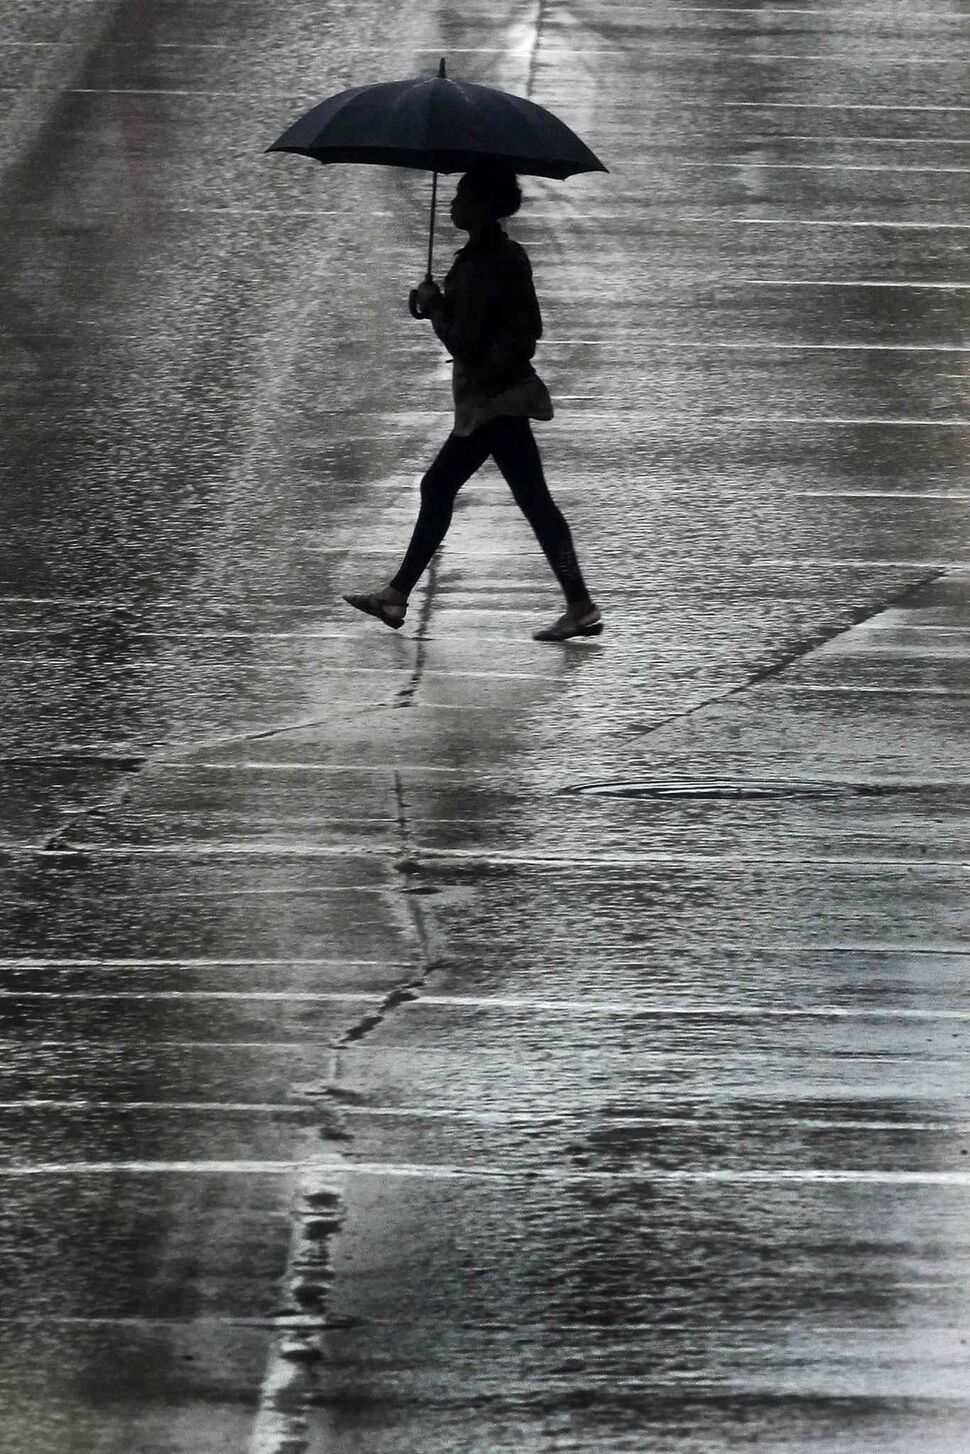 A pedestrian crosses Portage Avenue during a day of rainfall May 19, 2013. (John Woods / Winnipeg Free Press)